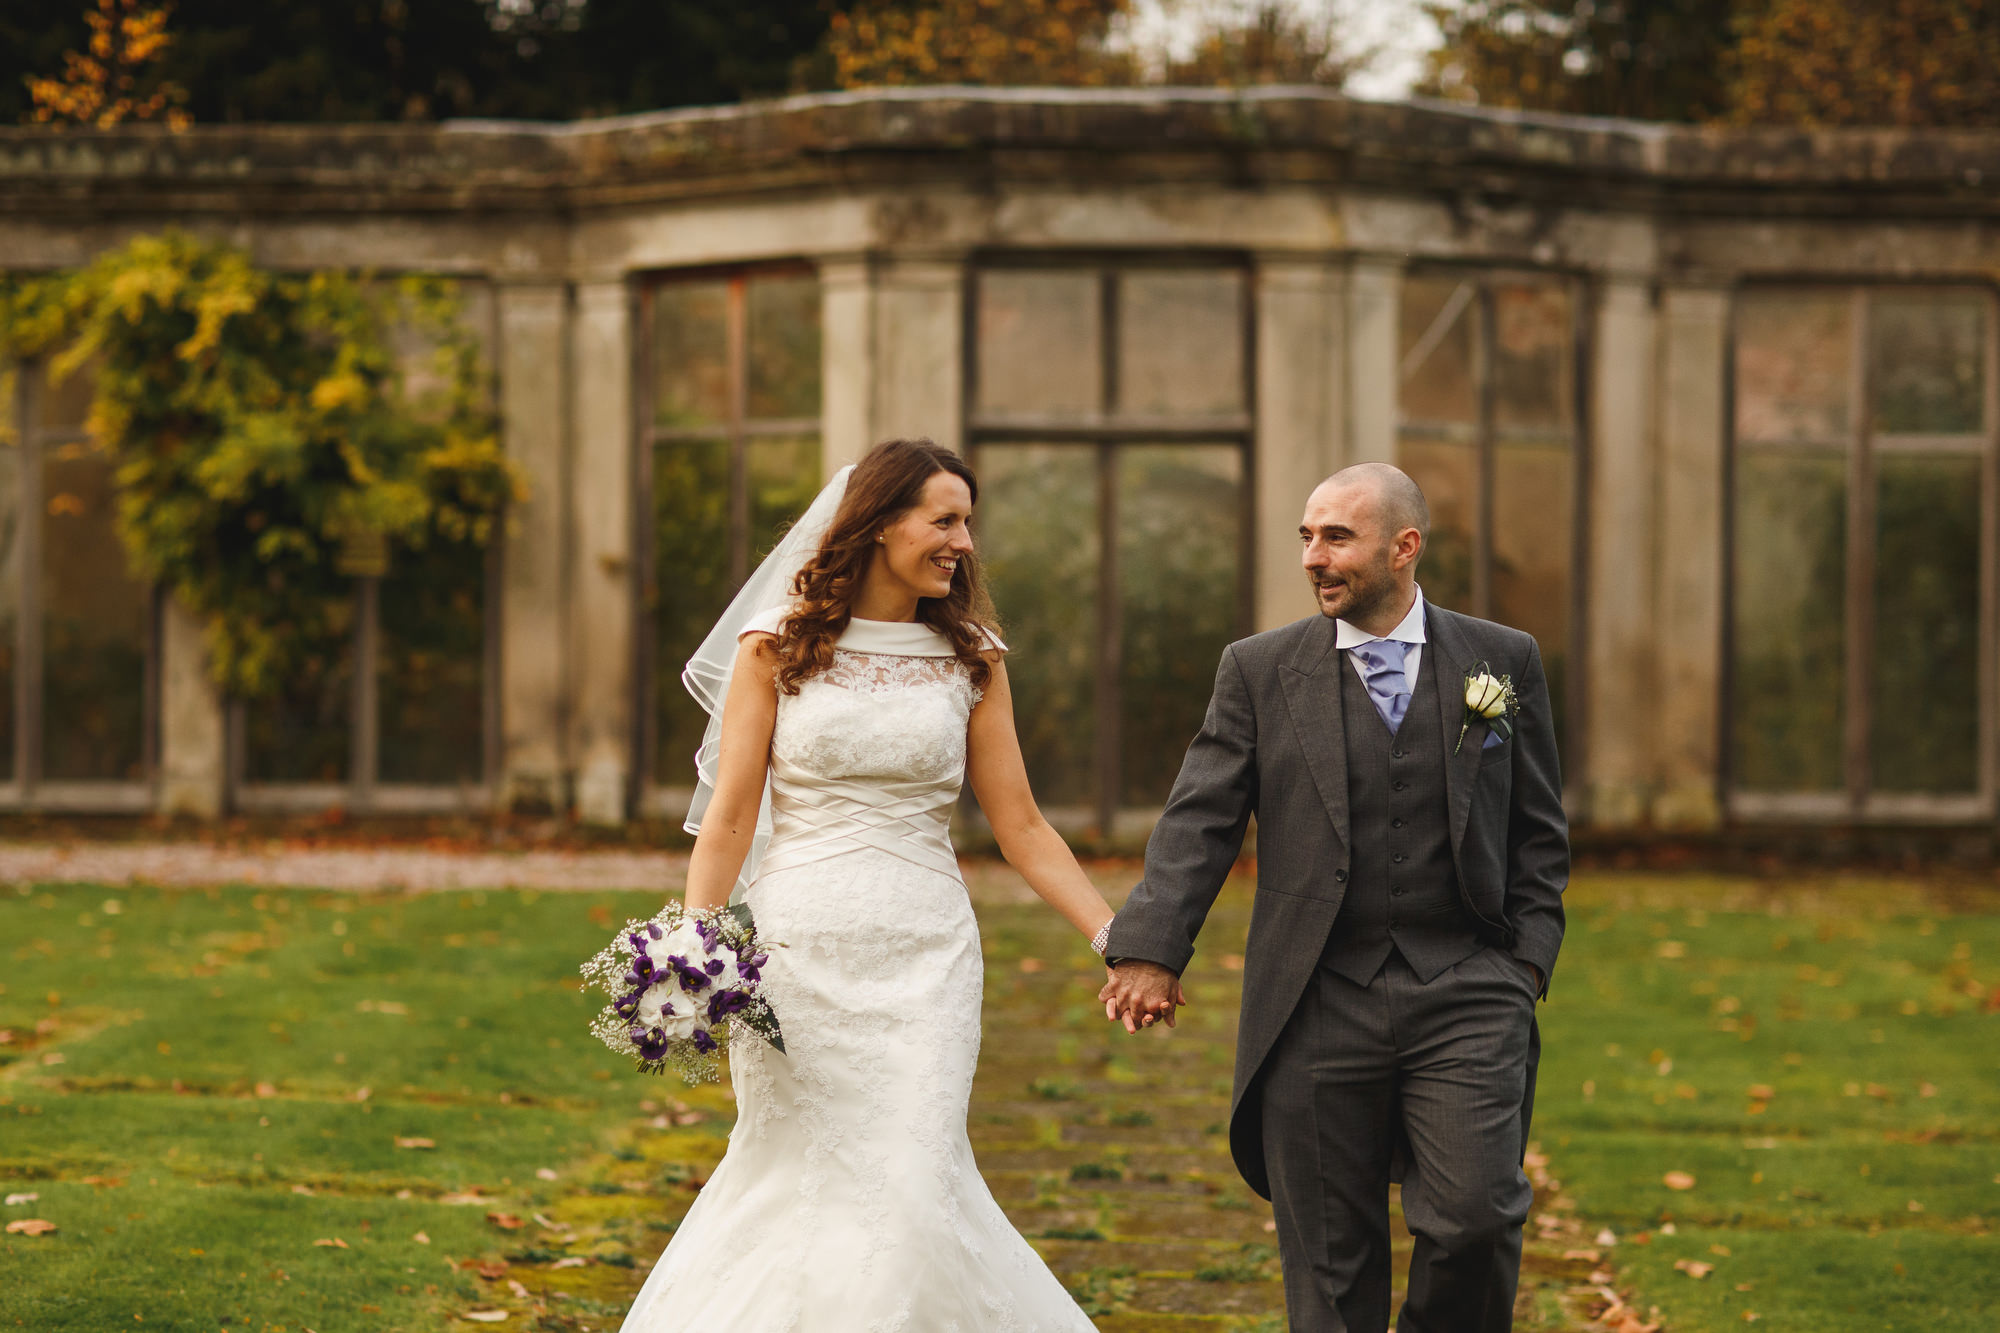 Sandon Hall Wedding Photographers - ARJ Photography